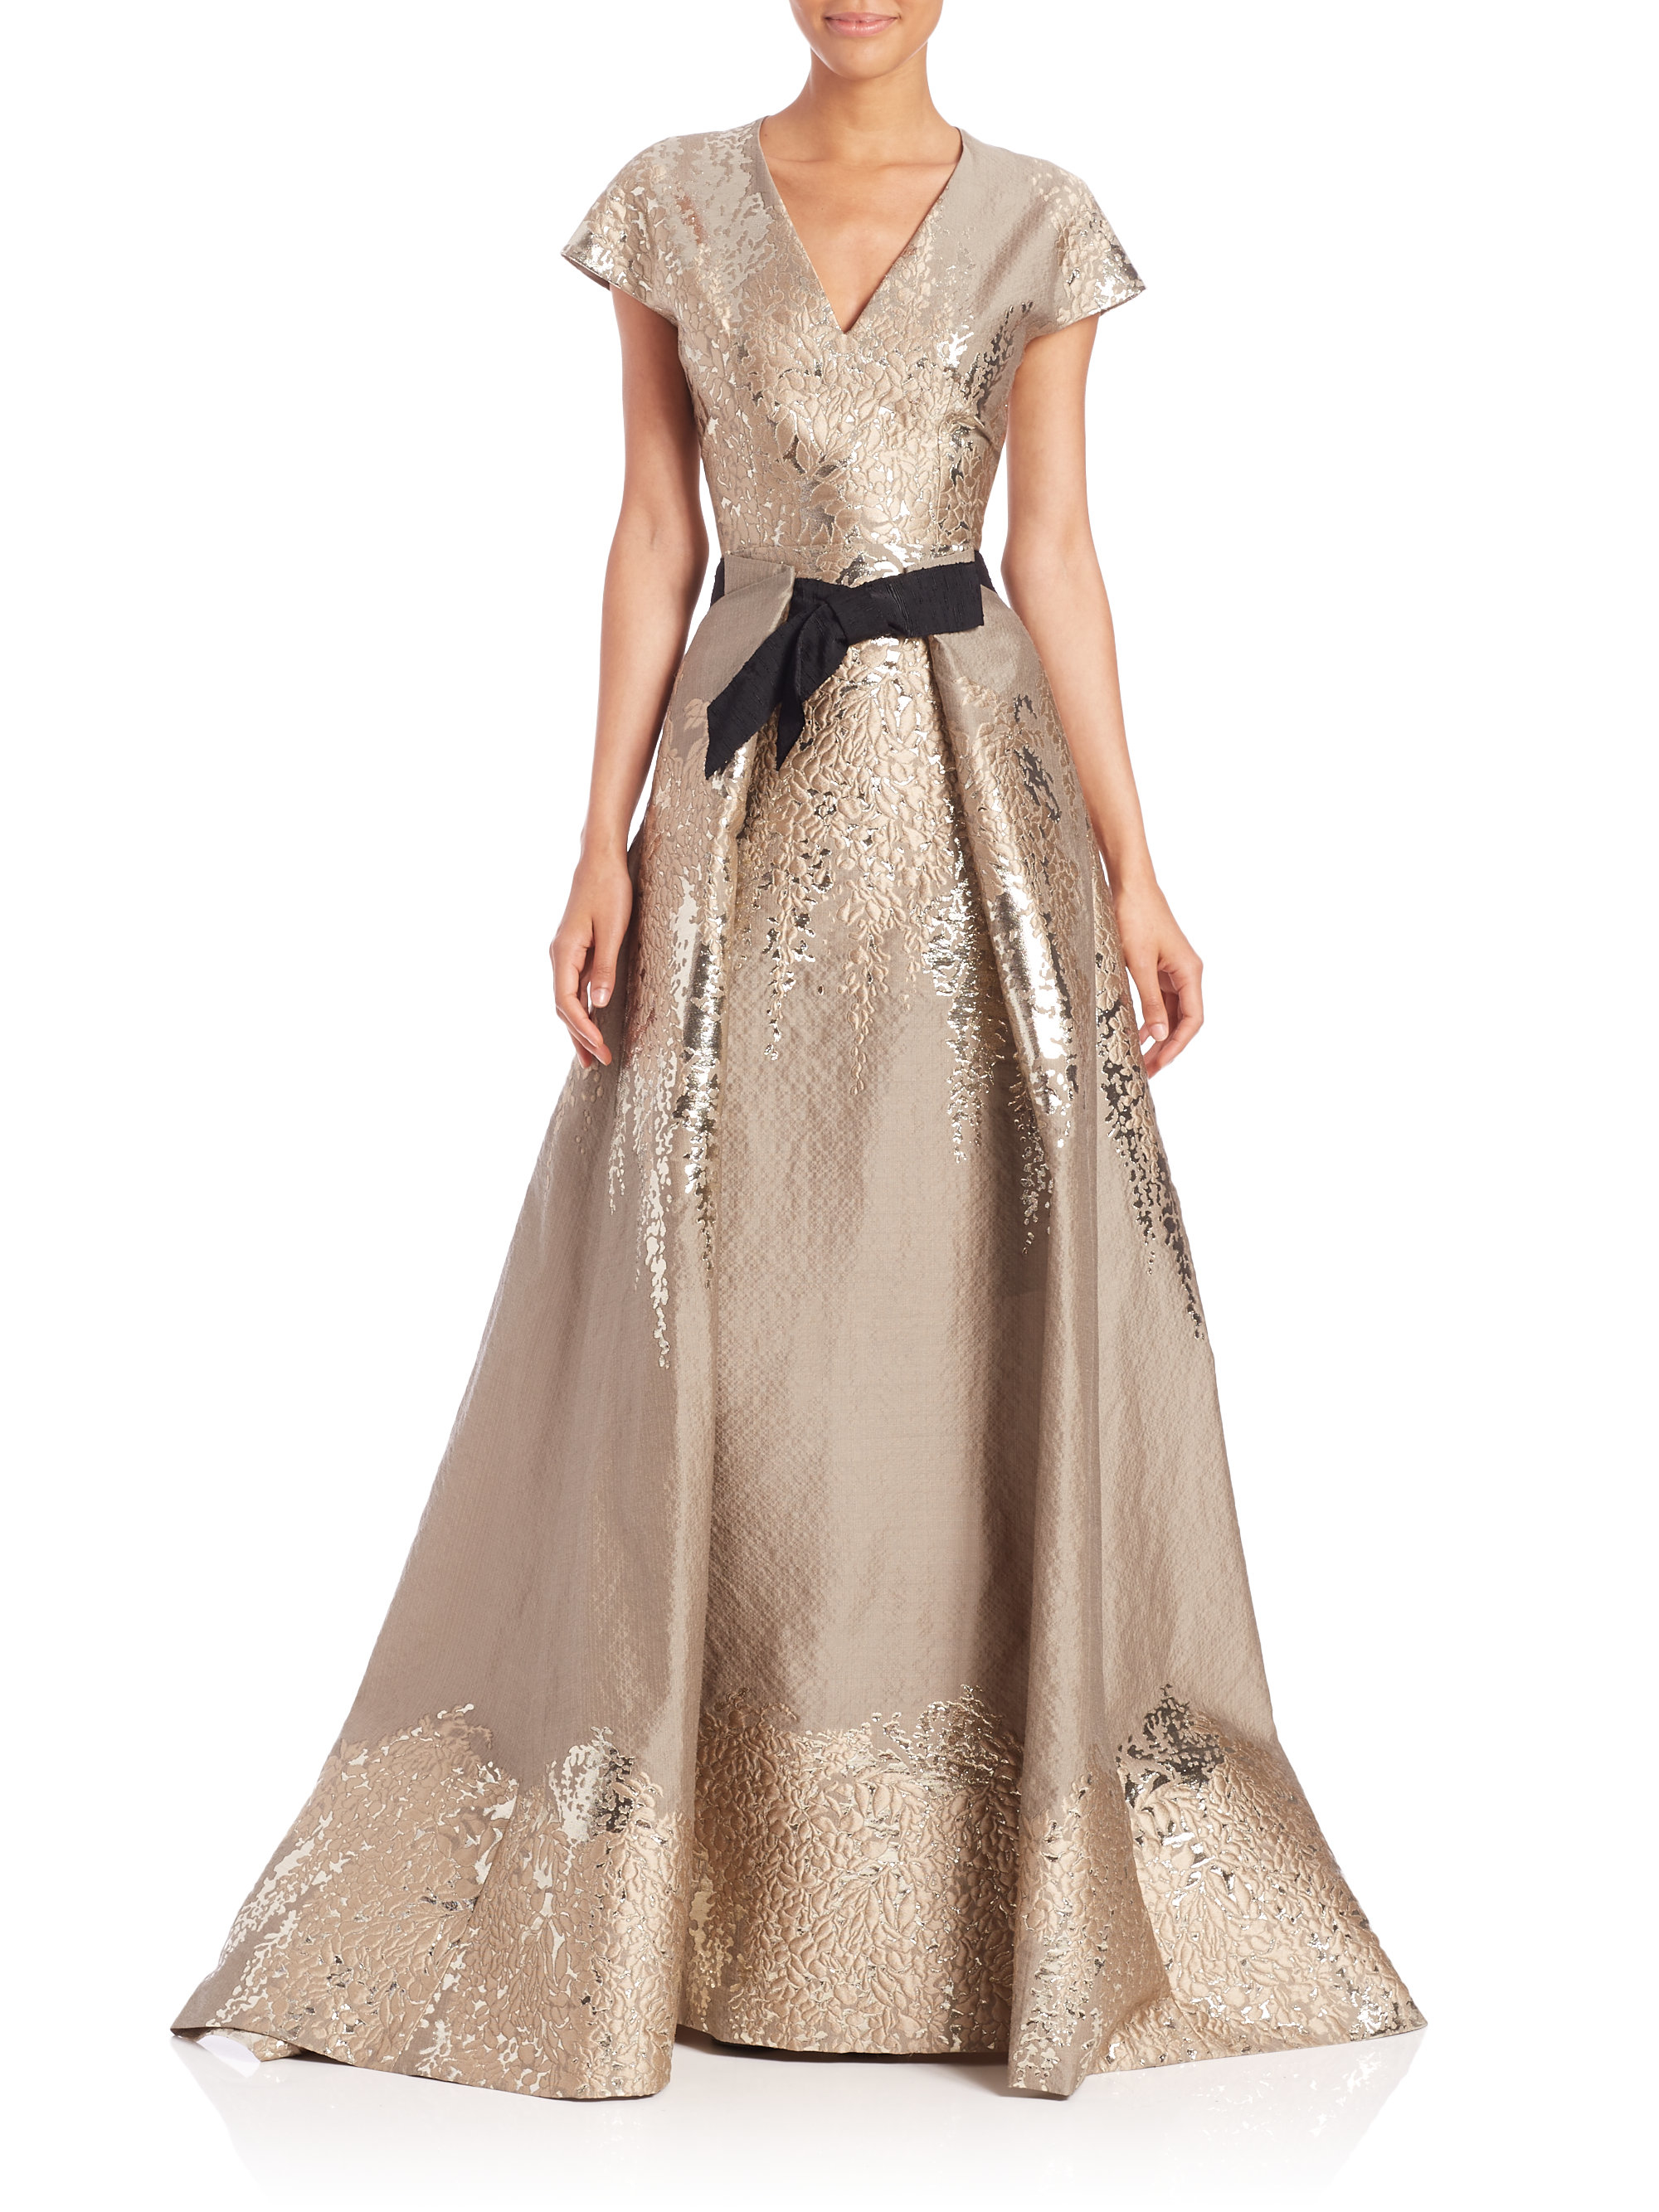 Lyst - Carolina Herrera Westeria Metallic Jacquard Gown in Metallic